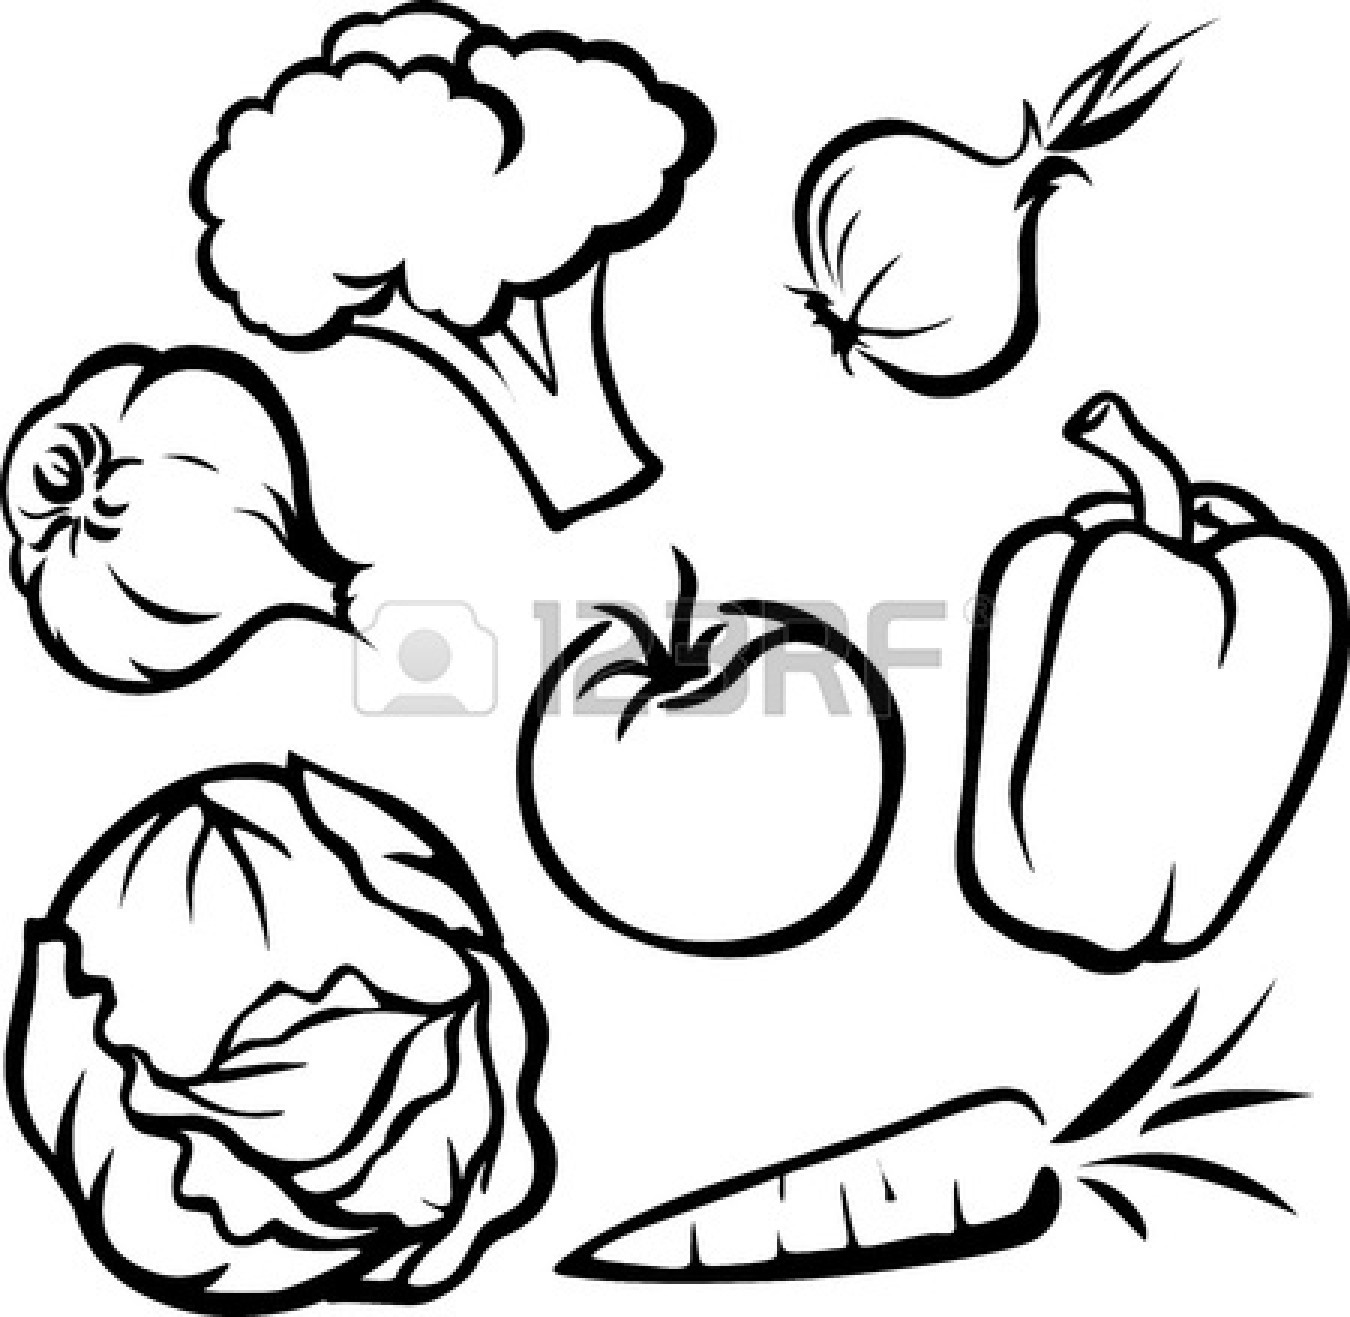 Vegetables Clipart Black And White Fruit And Vegetable Clipart Black